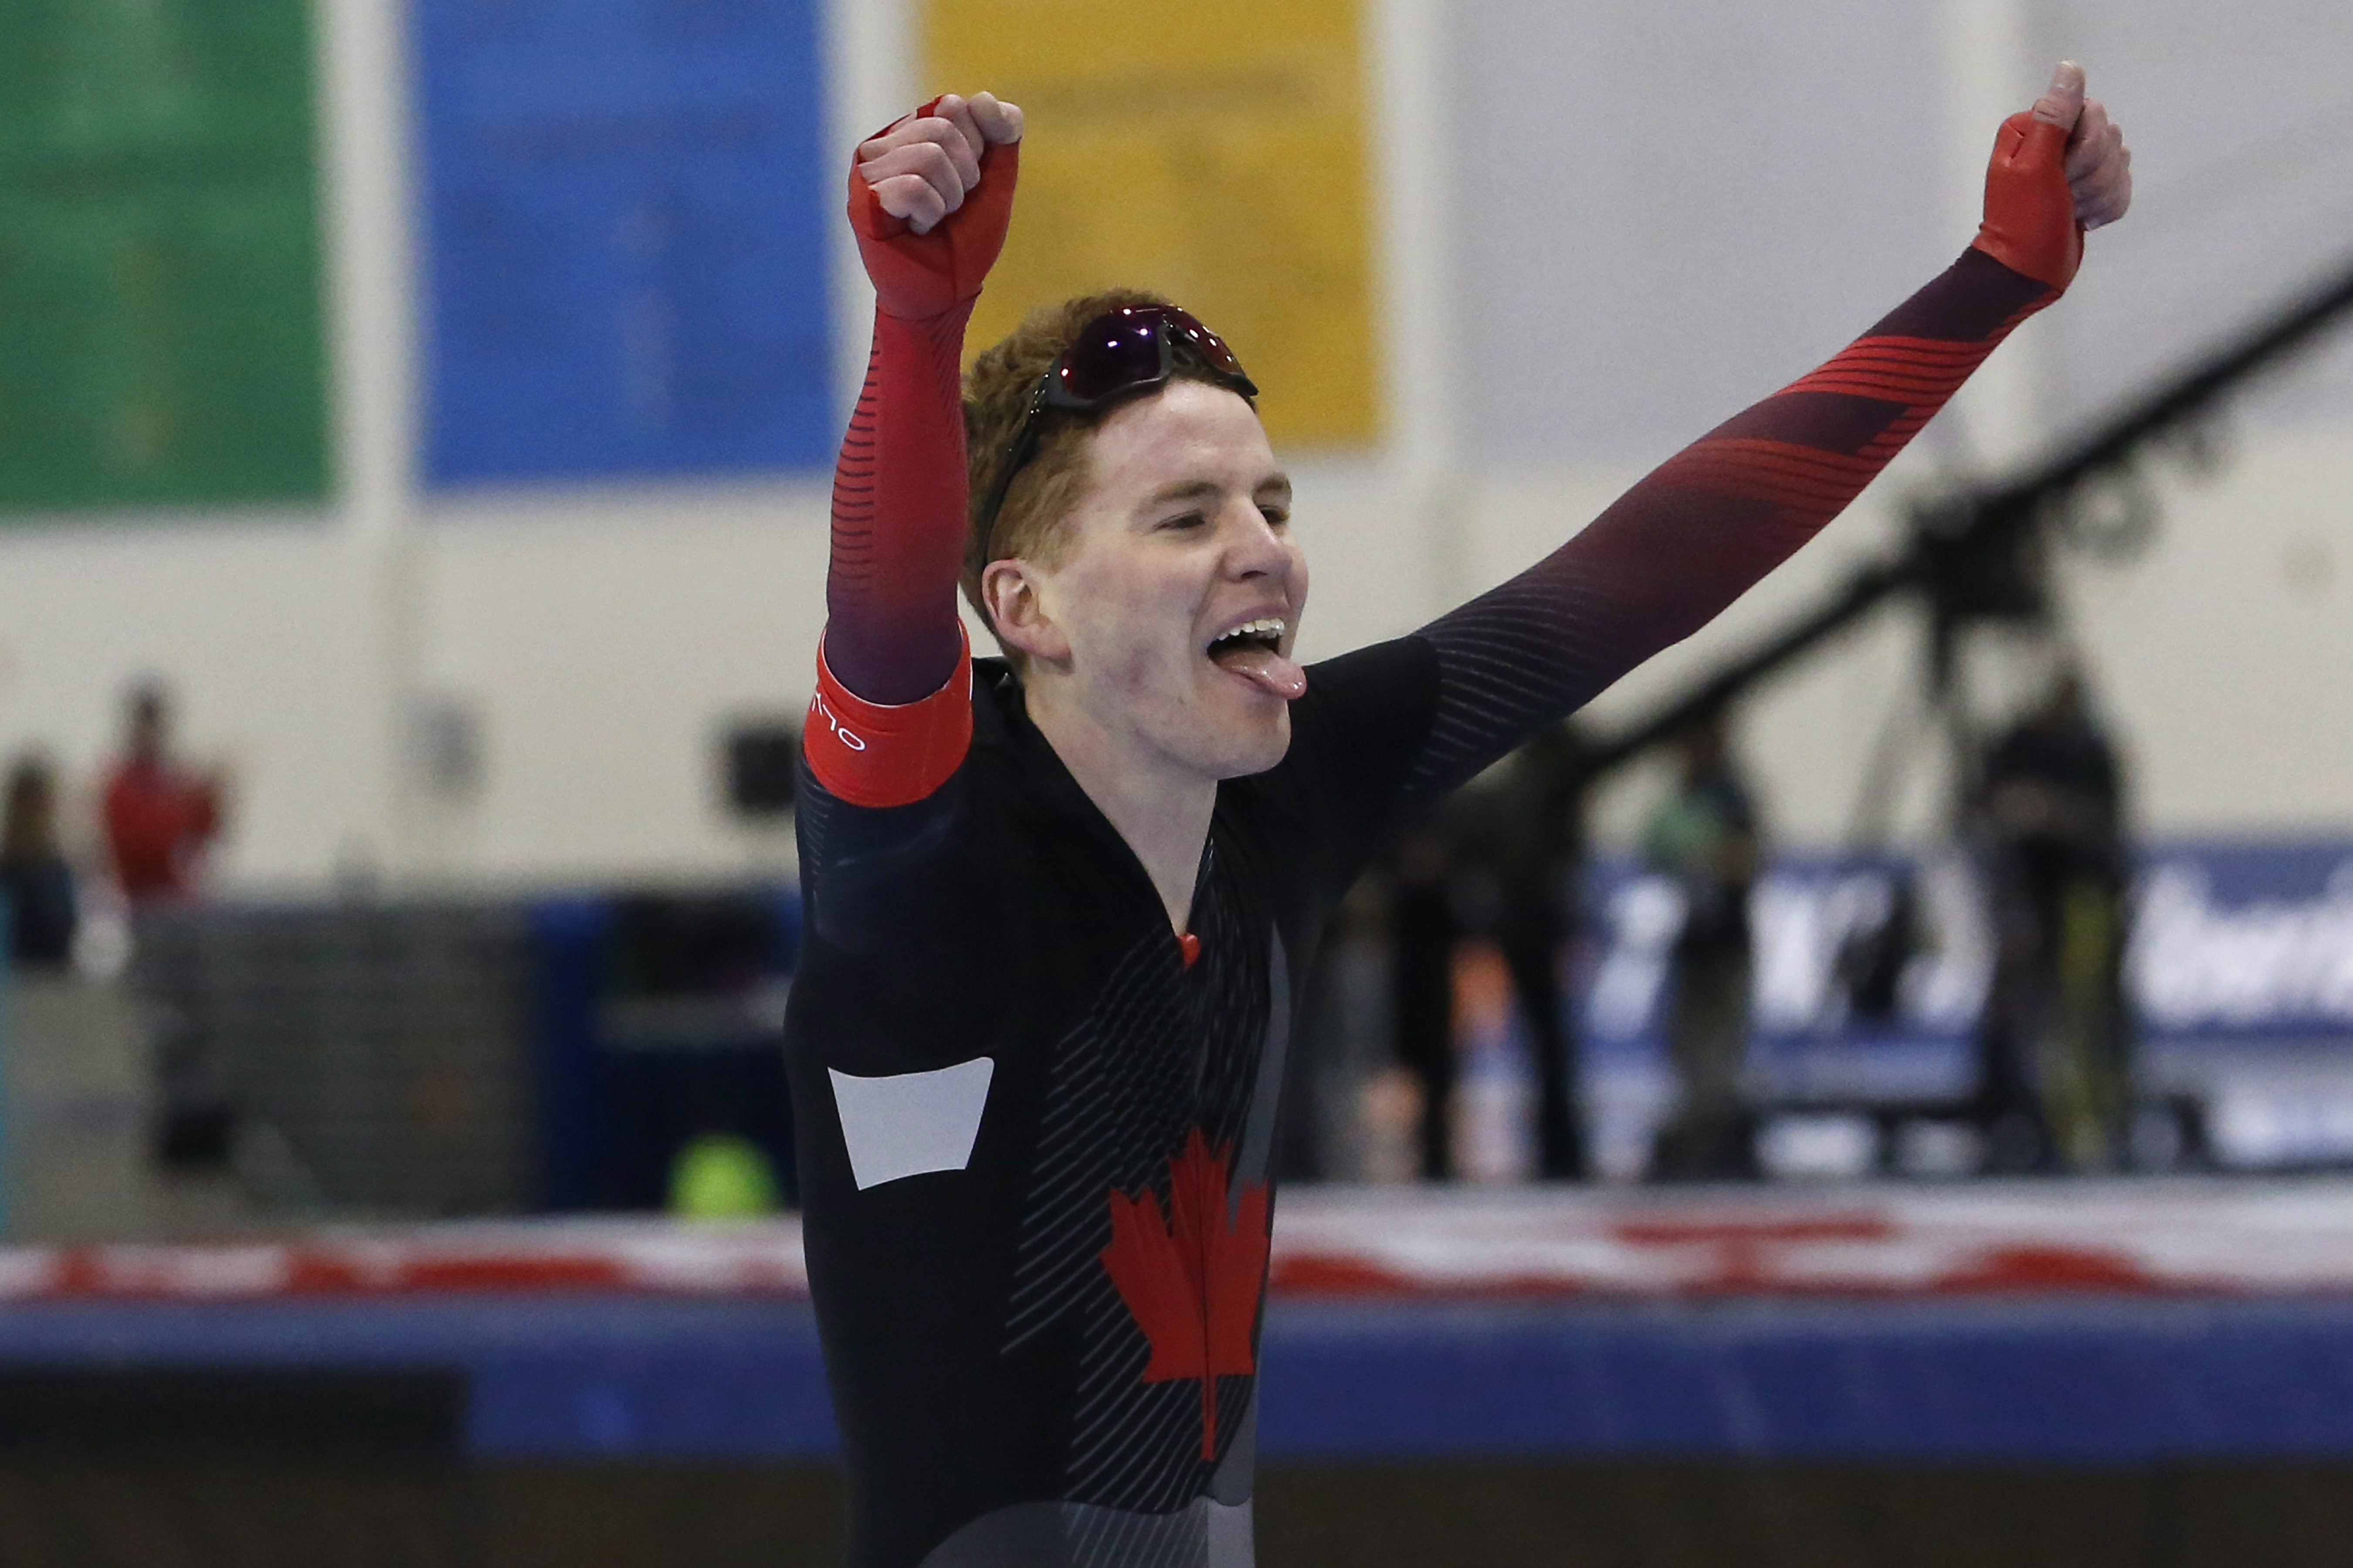 Speed skater holds his arms up in the air in celebration